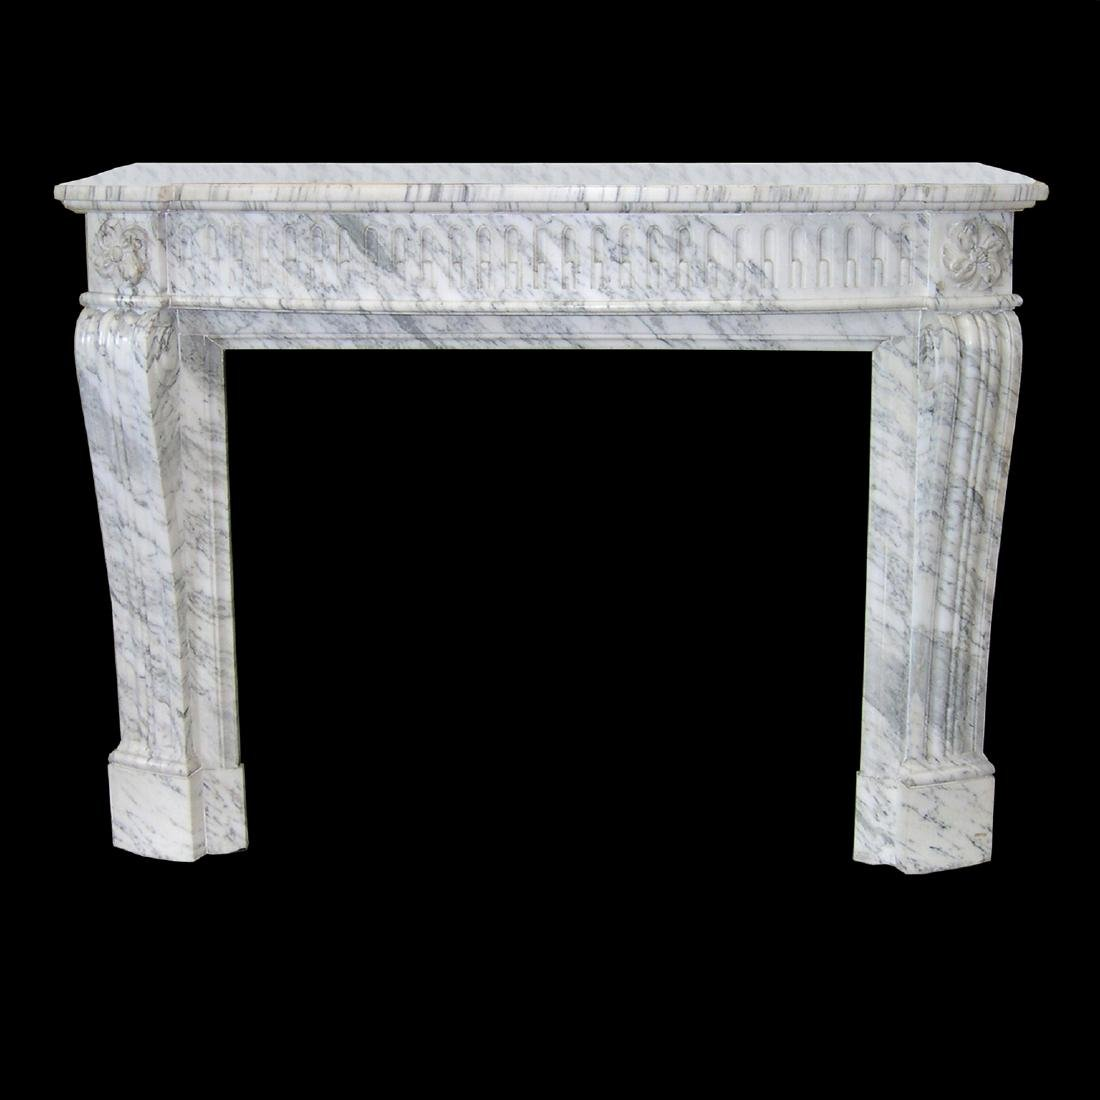 A carved Louis XVI style chimney piece in Arabascato